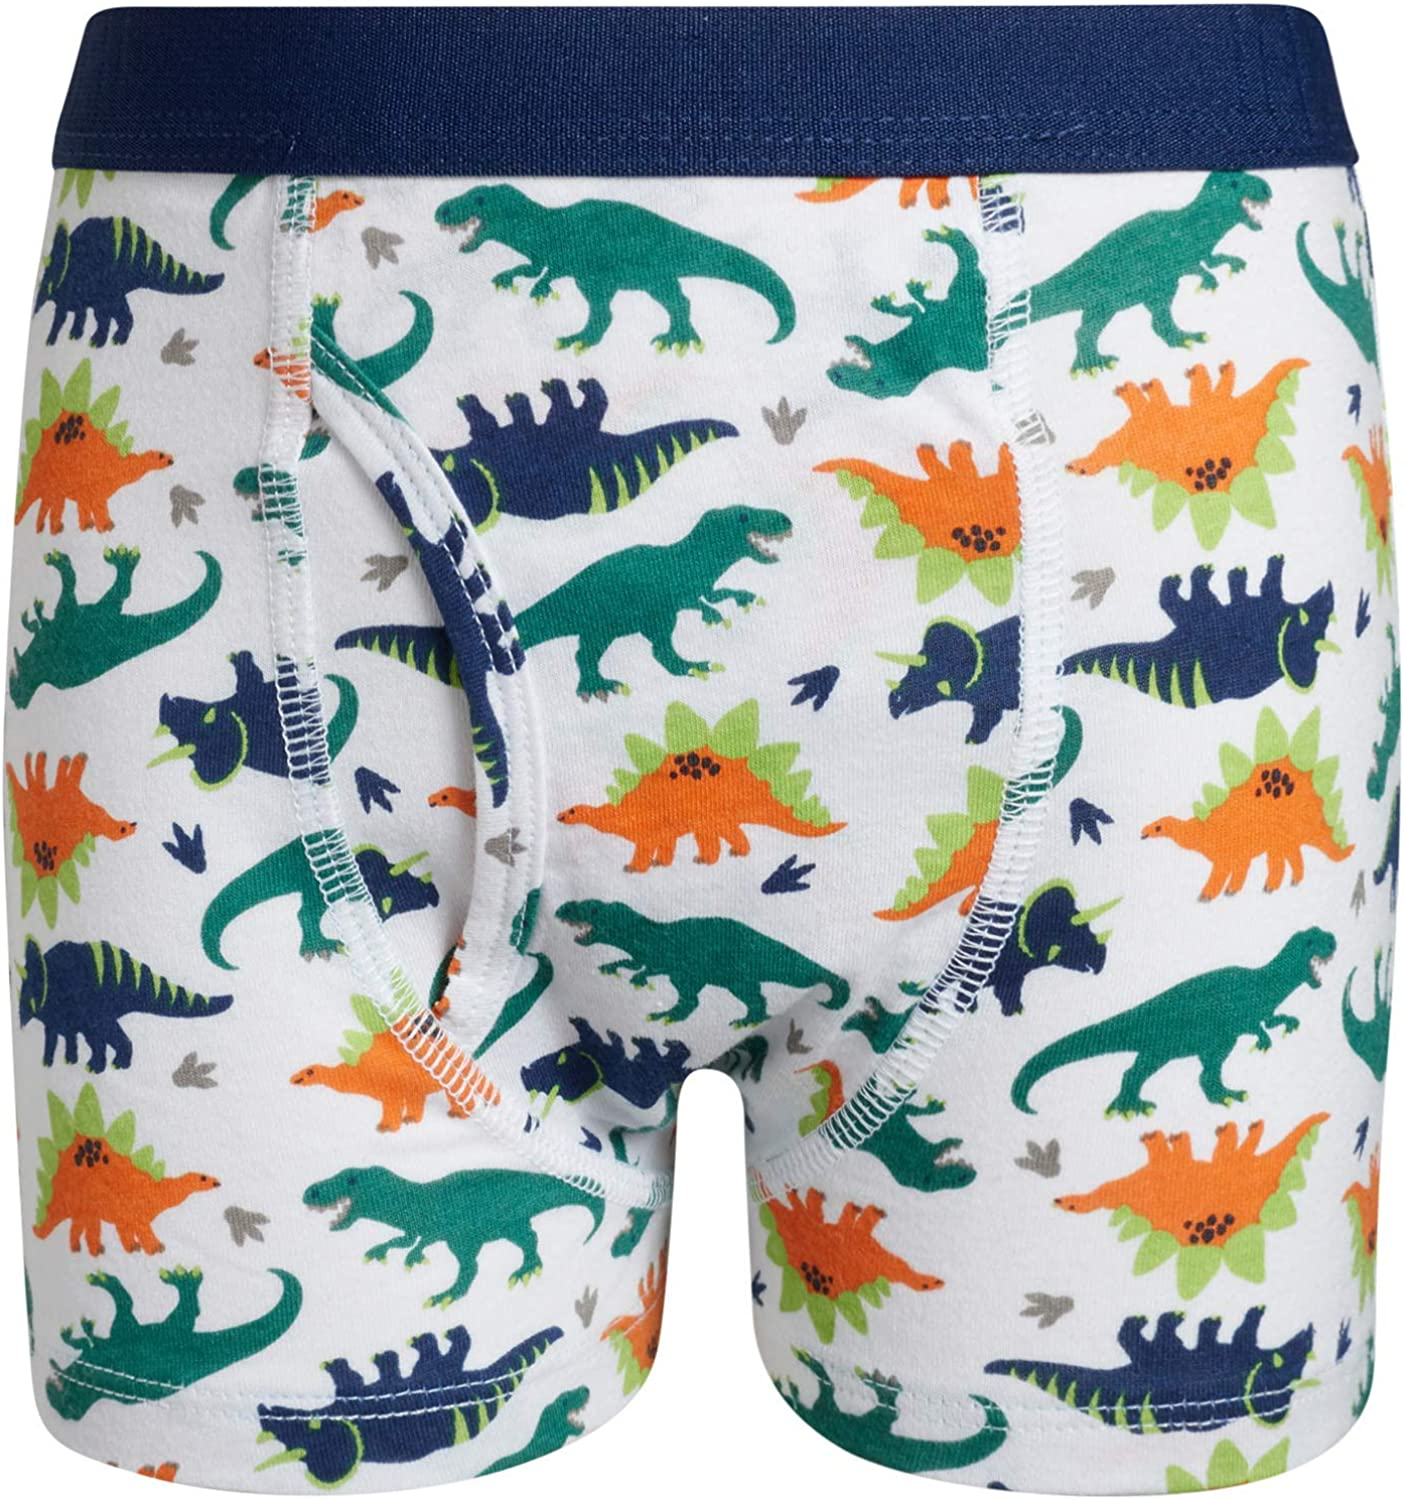 Toddler//Little//Big Boys Only Boys Cotton Boxer Brief Breathable Underwear with Printed Waistband 10 Pack